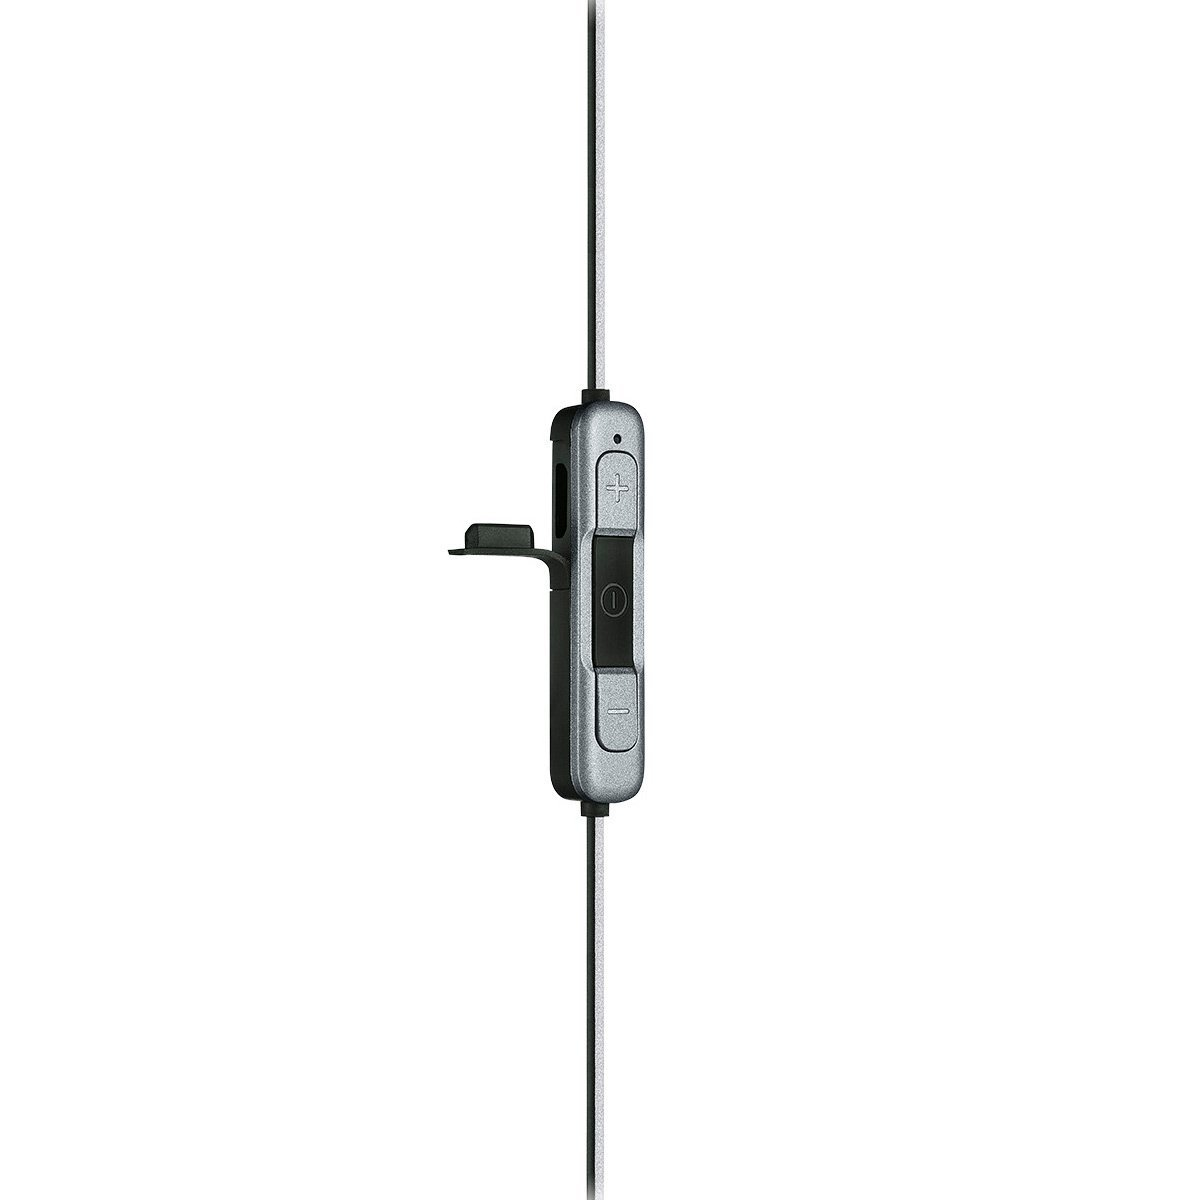 c2950ee683f JBL Reflect Mini 2 Wireless In-Ear Sport Headphones with Three-Button  Remote and Microphone (Black) - Walmart.com